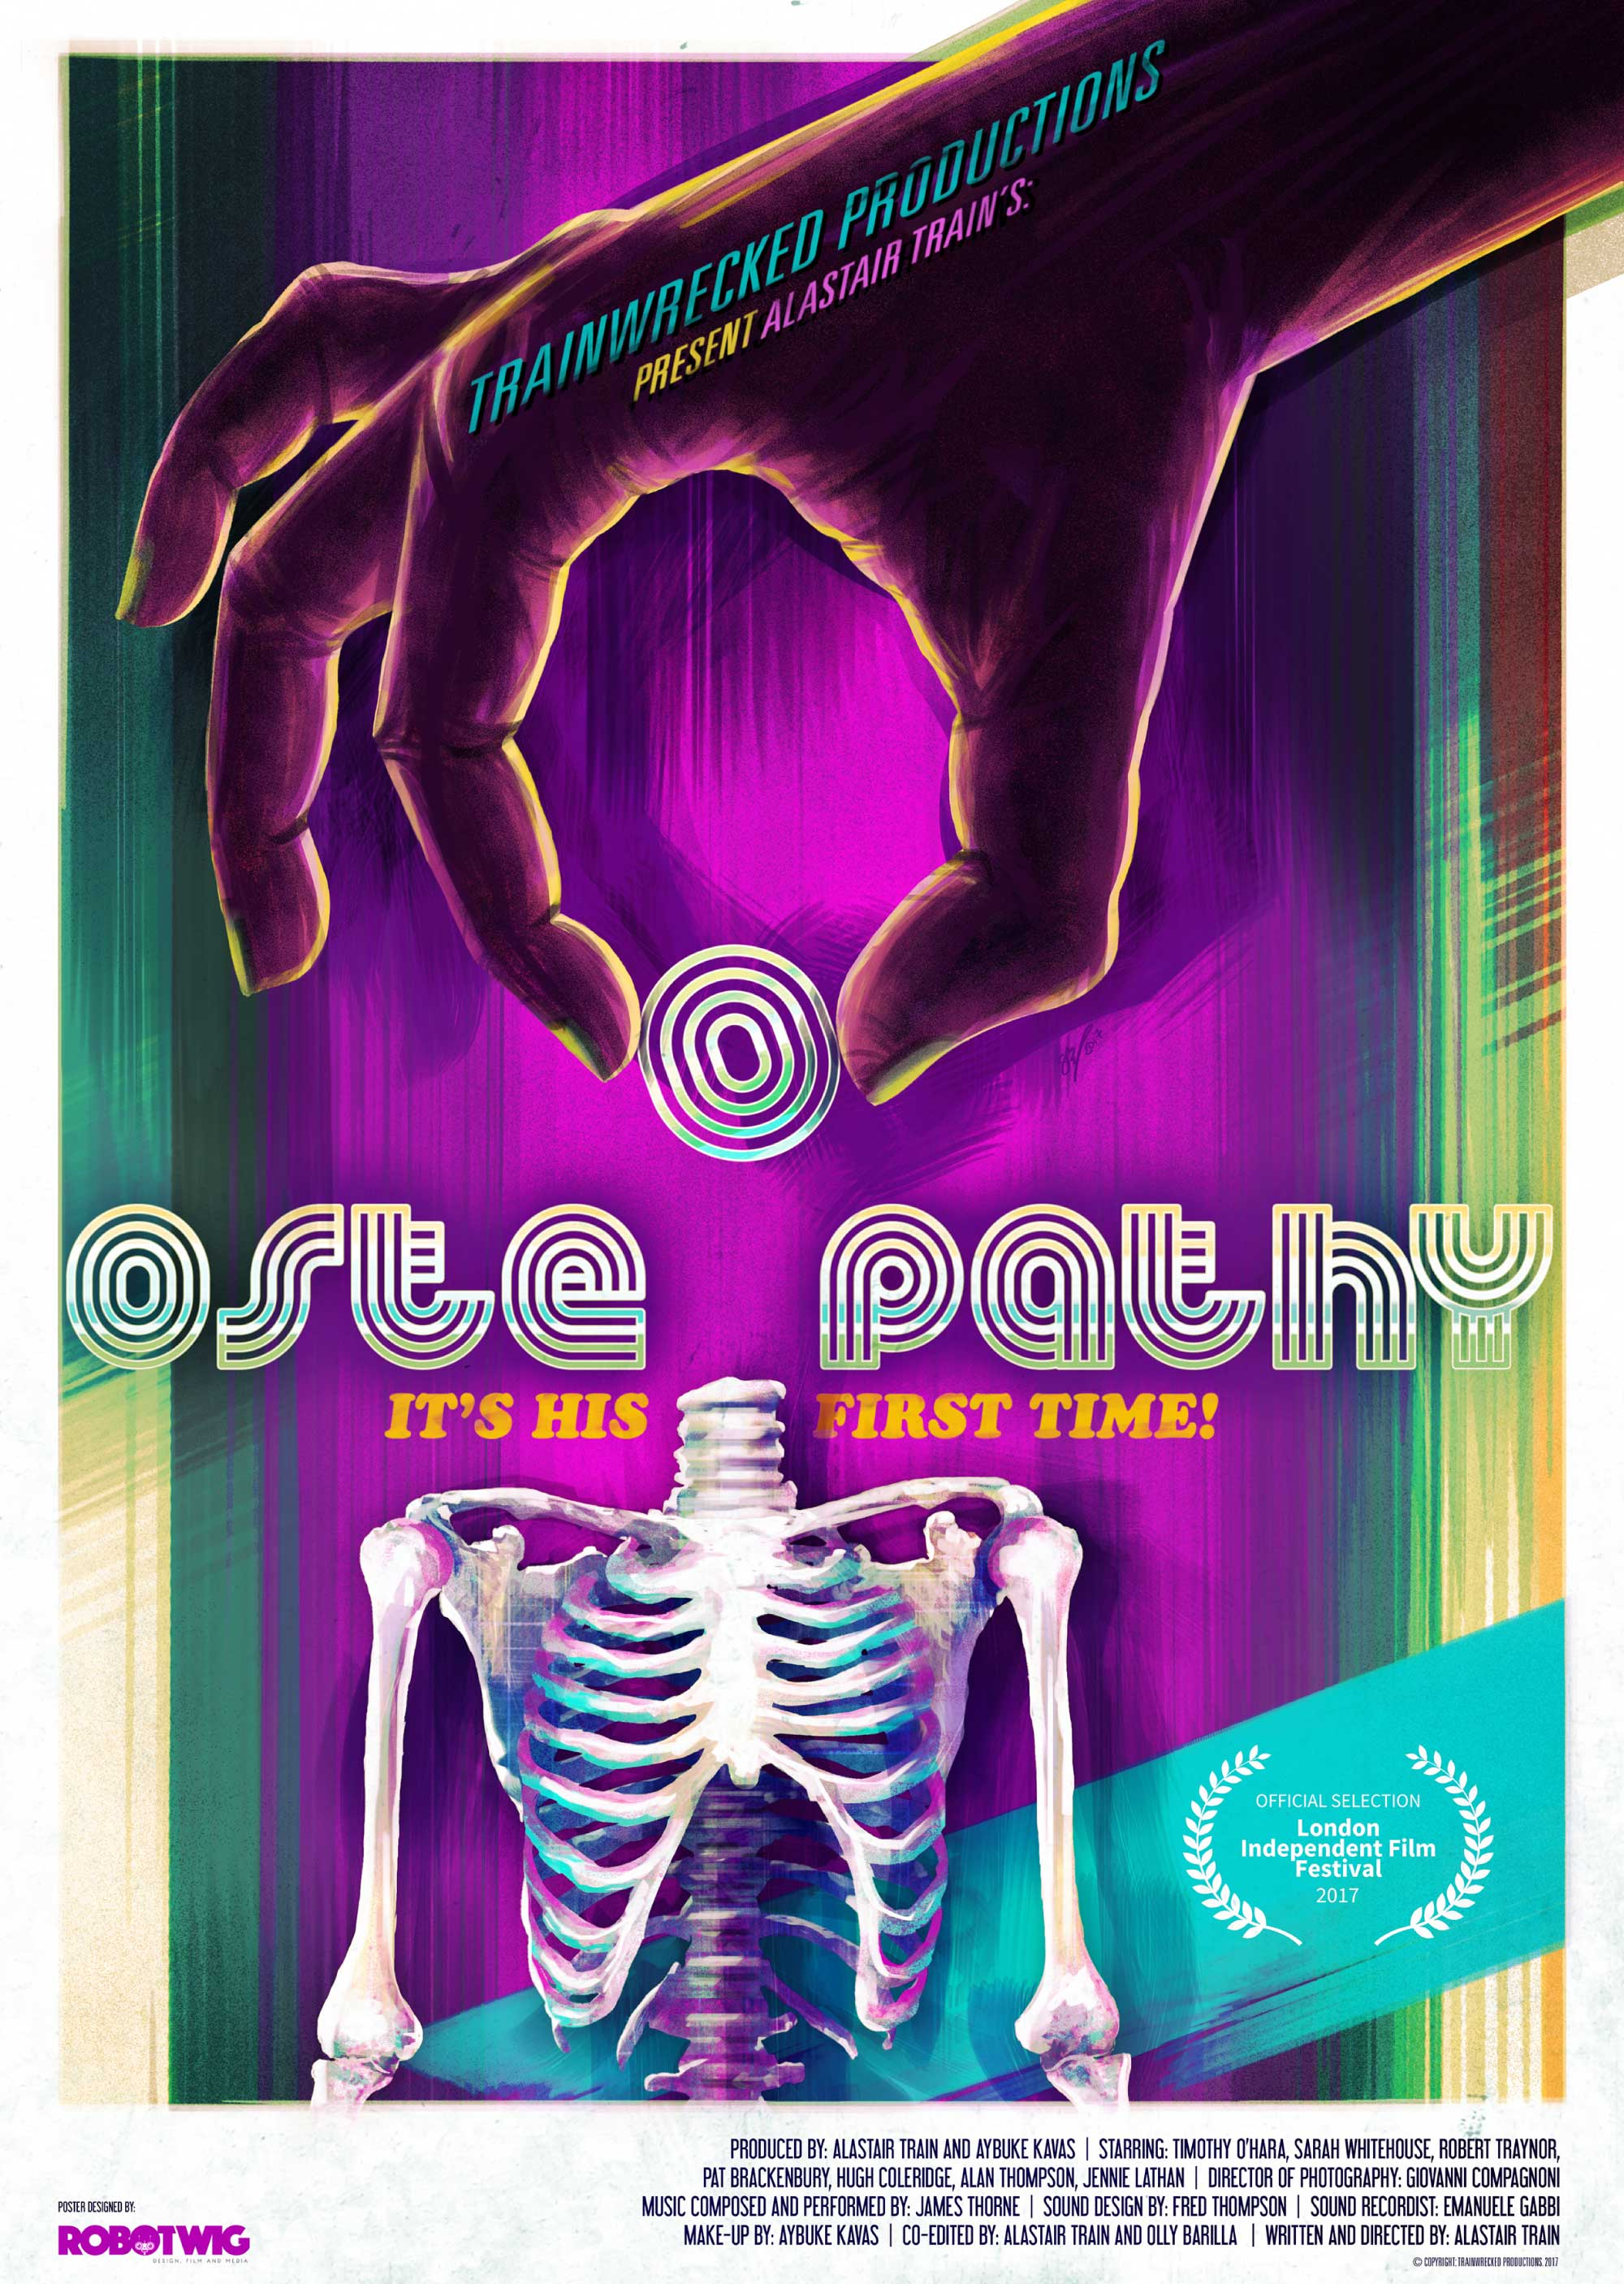 A hand plucks the head off of a skeleton — the head doubles as the middle 'o' in Osteopathy. Poster for the film Osteopathy, produced by Lunar Dragon Productions.